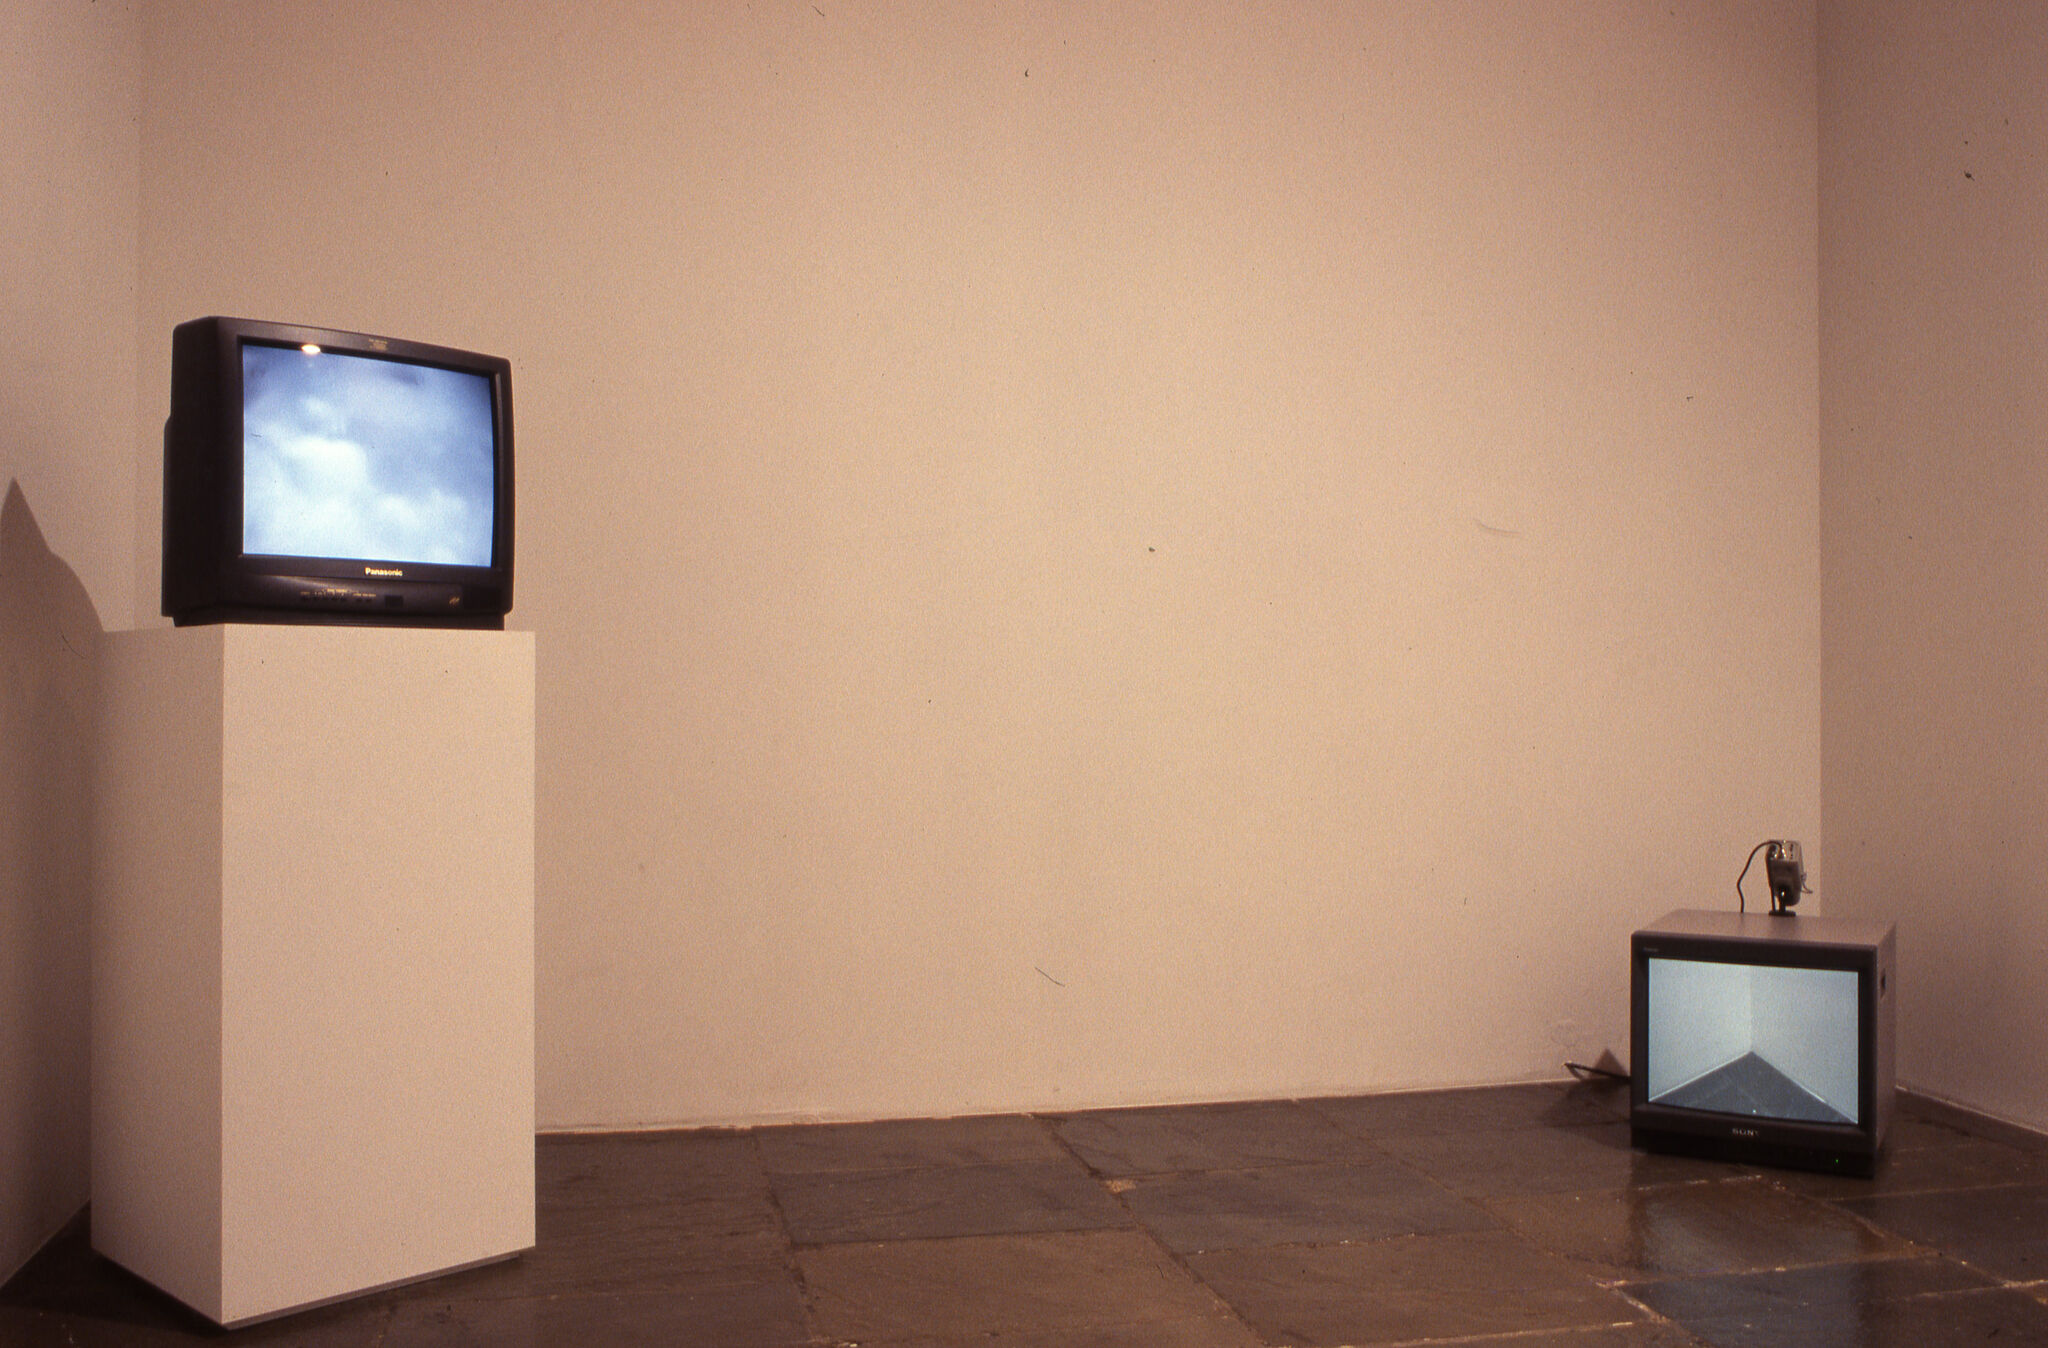 A small television set displayed on a pedestal along with another on the ground.